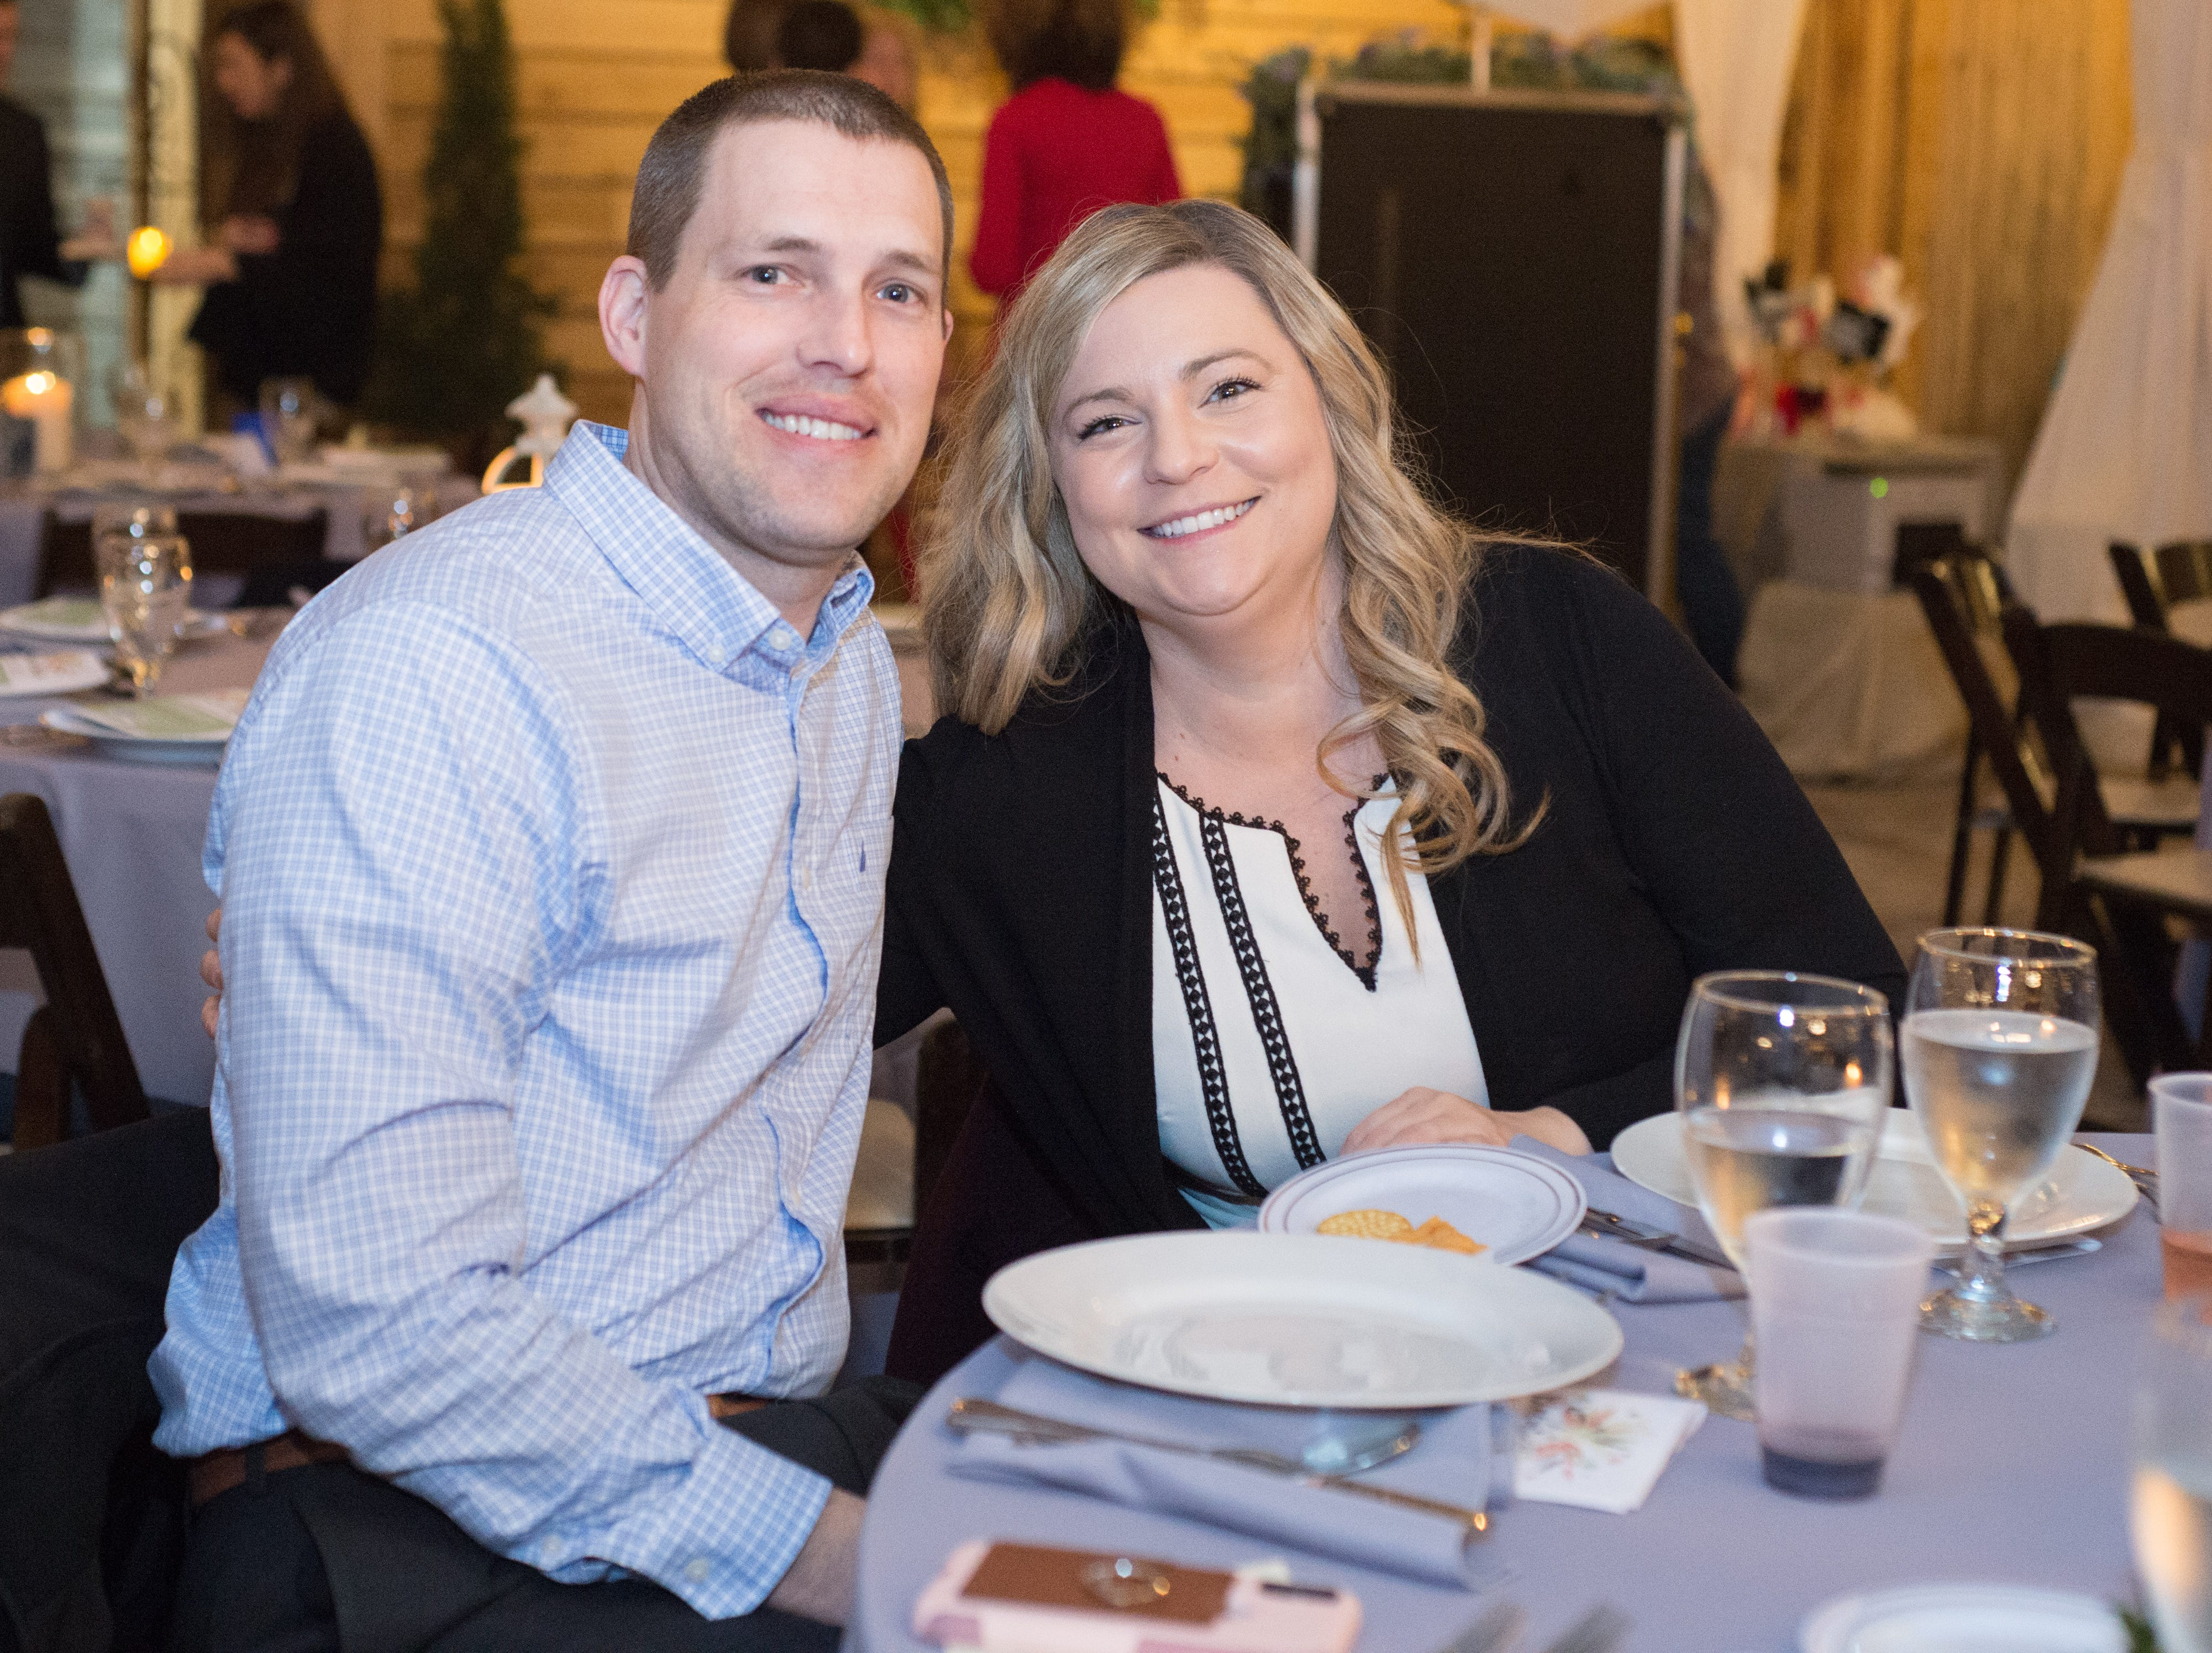 Attendees enjoy United Way of Sumner County's Bloomin' Bash Gala and Auction at Long Hollow Gardens in Gallatin on Friday, March 1.